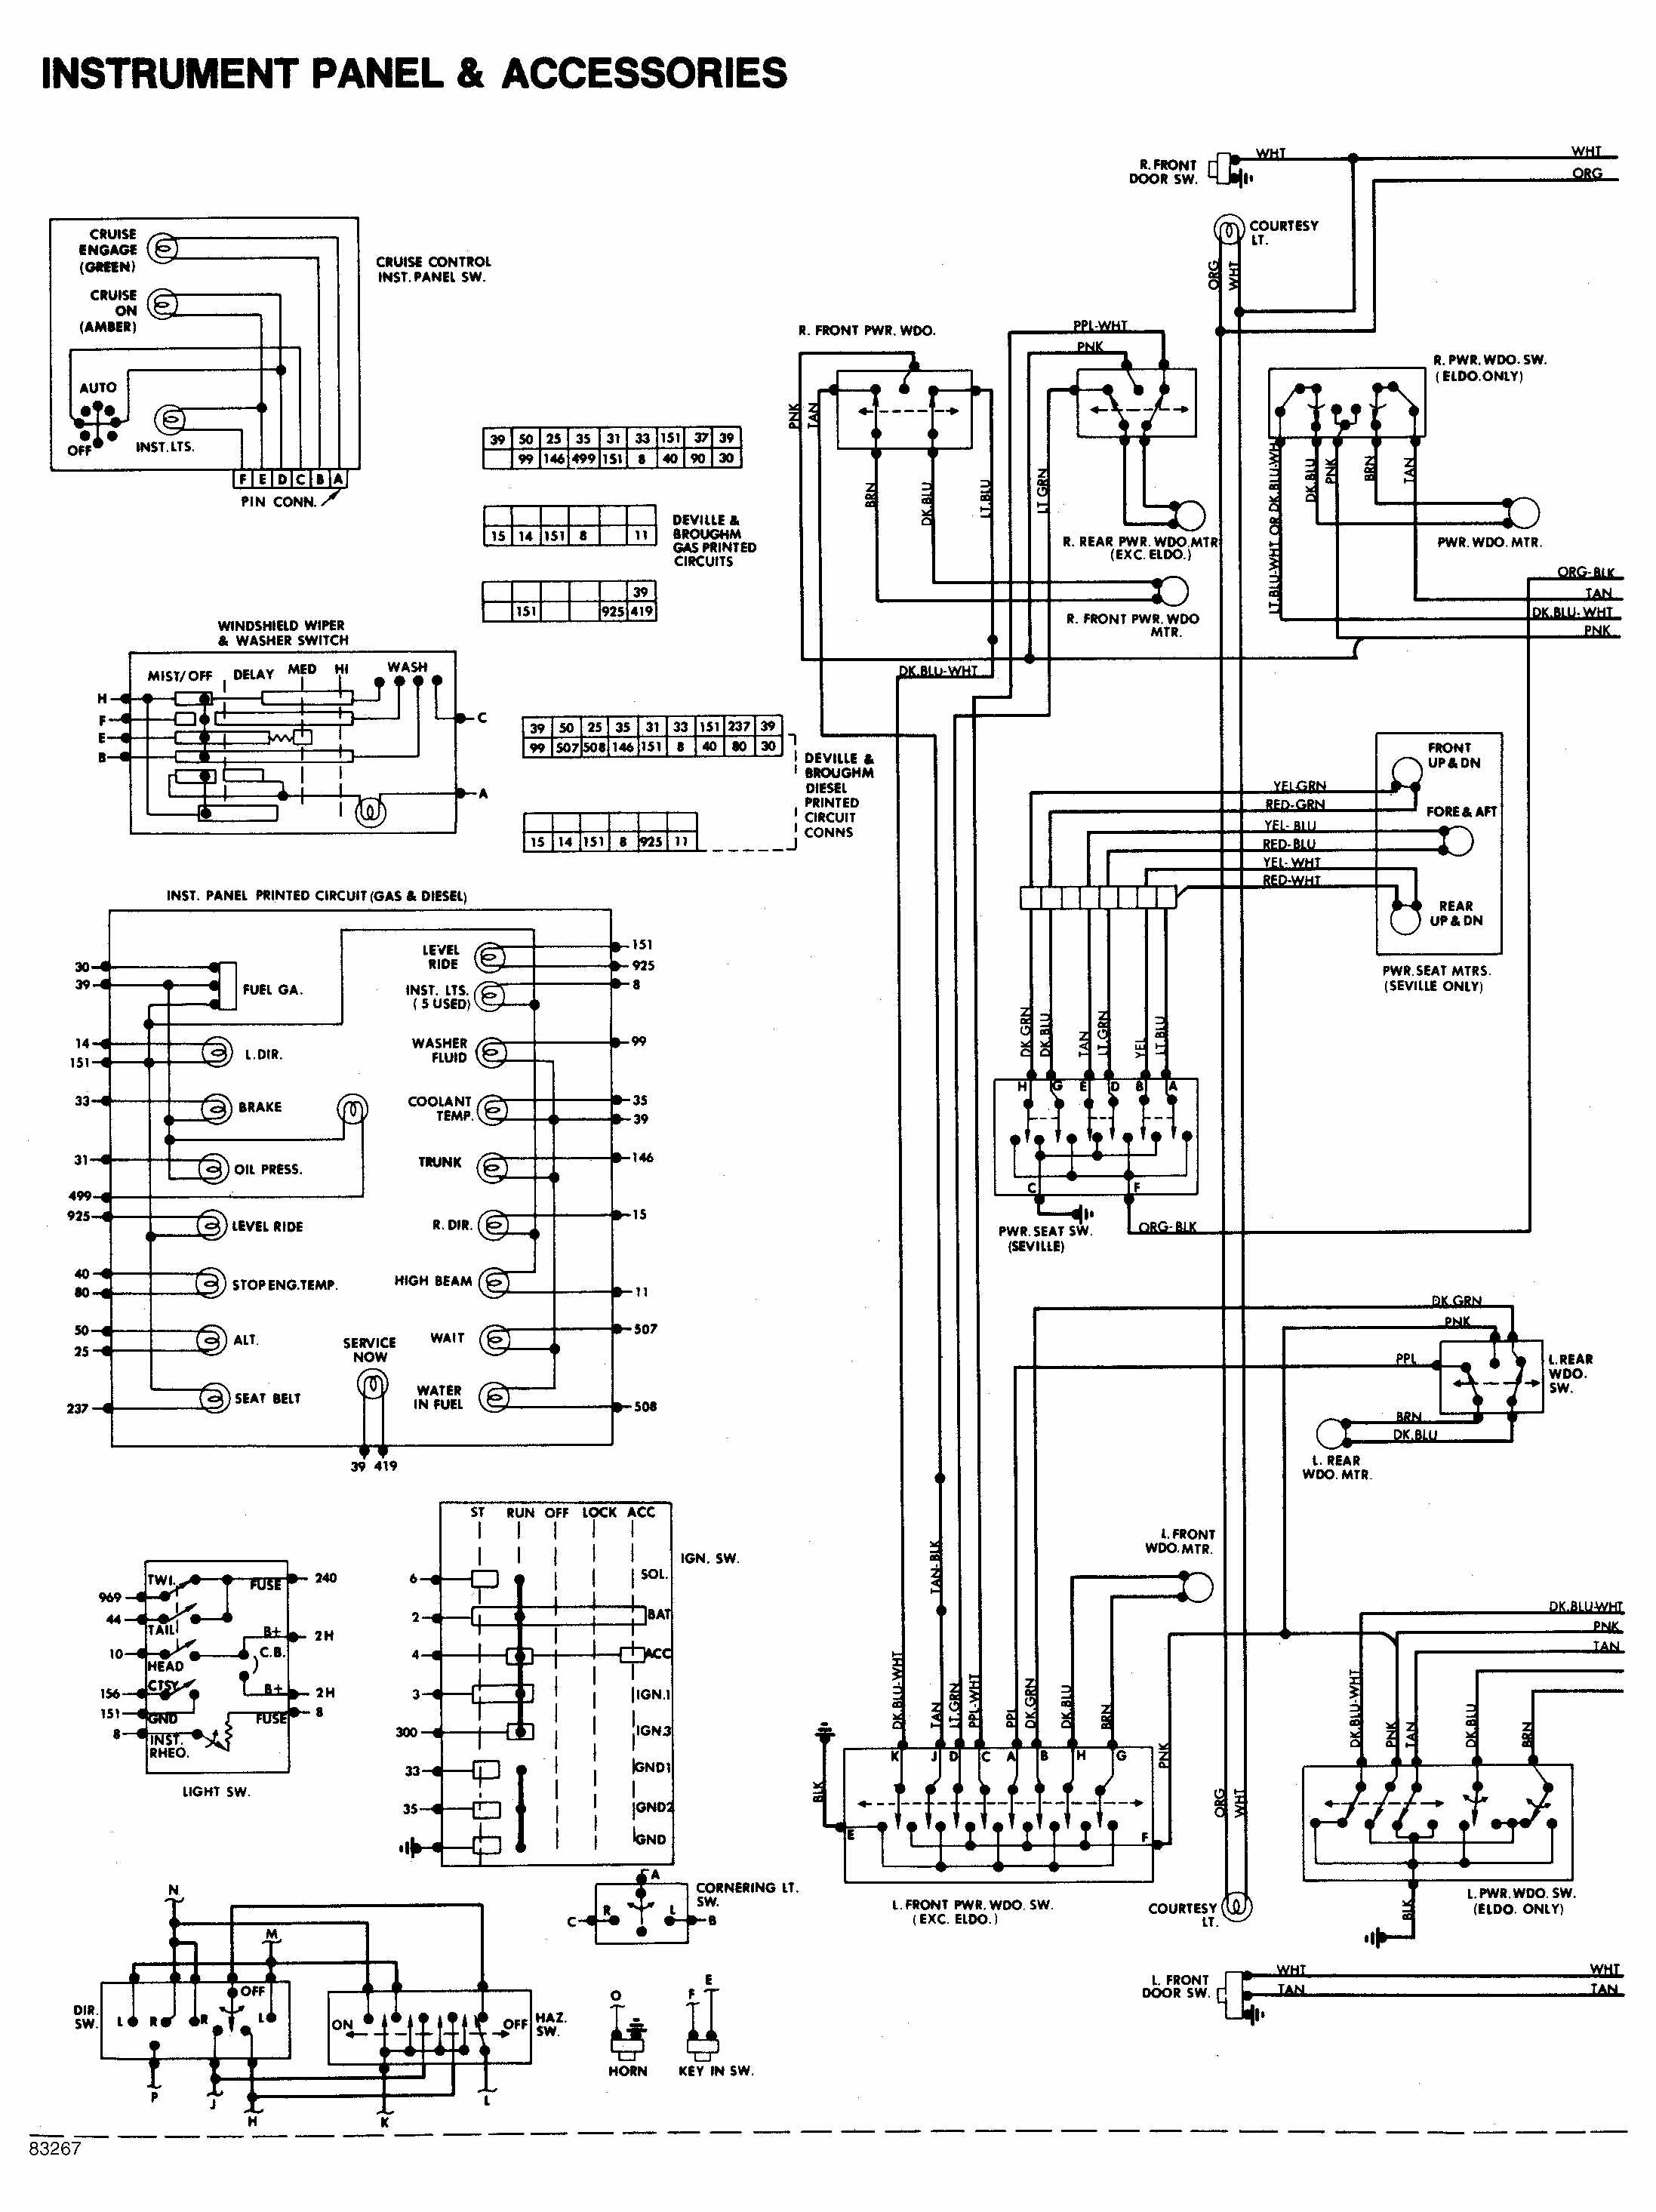 instrument panel and accessories wiring diagram of 1984 cadillac deville 1981 el camino wiring diagram 71 el camino wiring diagram \u2022 wiring GM Factory Wiring Diagram at soozxer.org